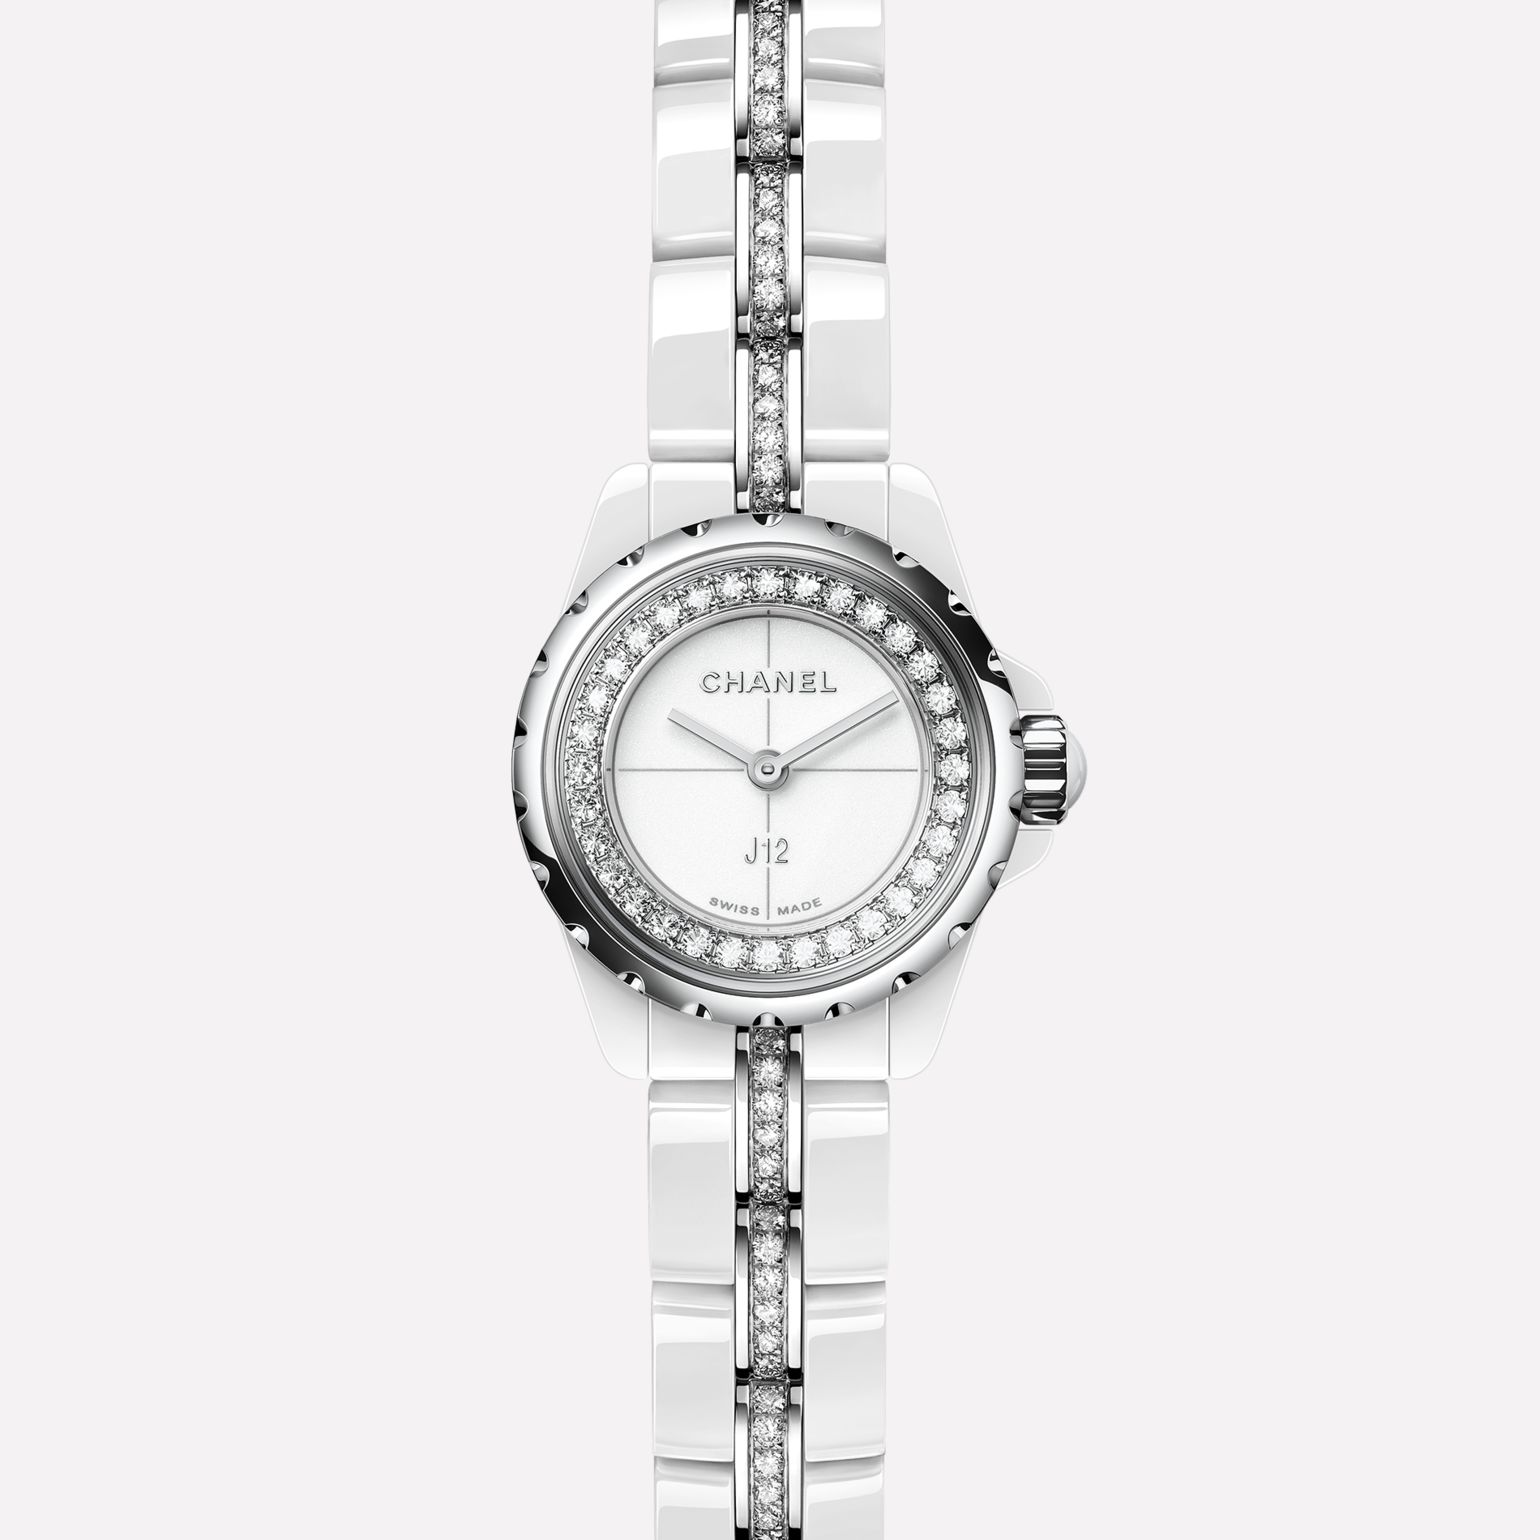 J12∙XS White highly resistant ceramic and steel, brilliant-cut diamond flange and bracelet